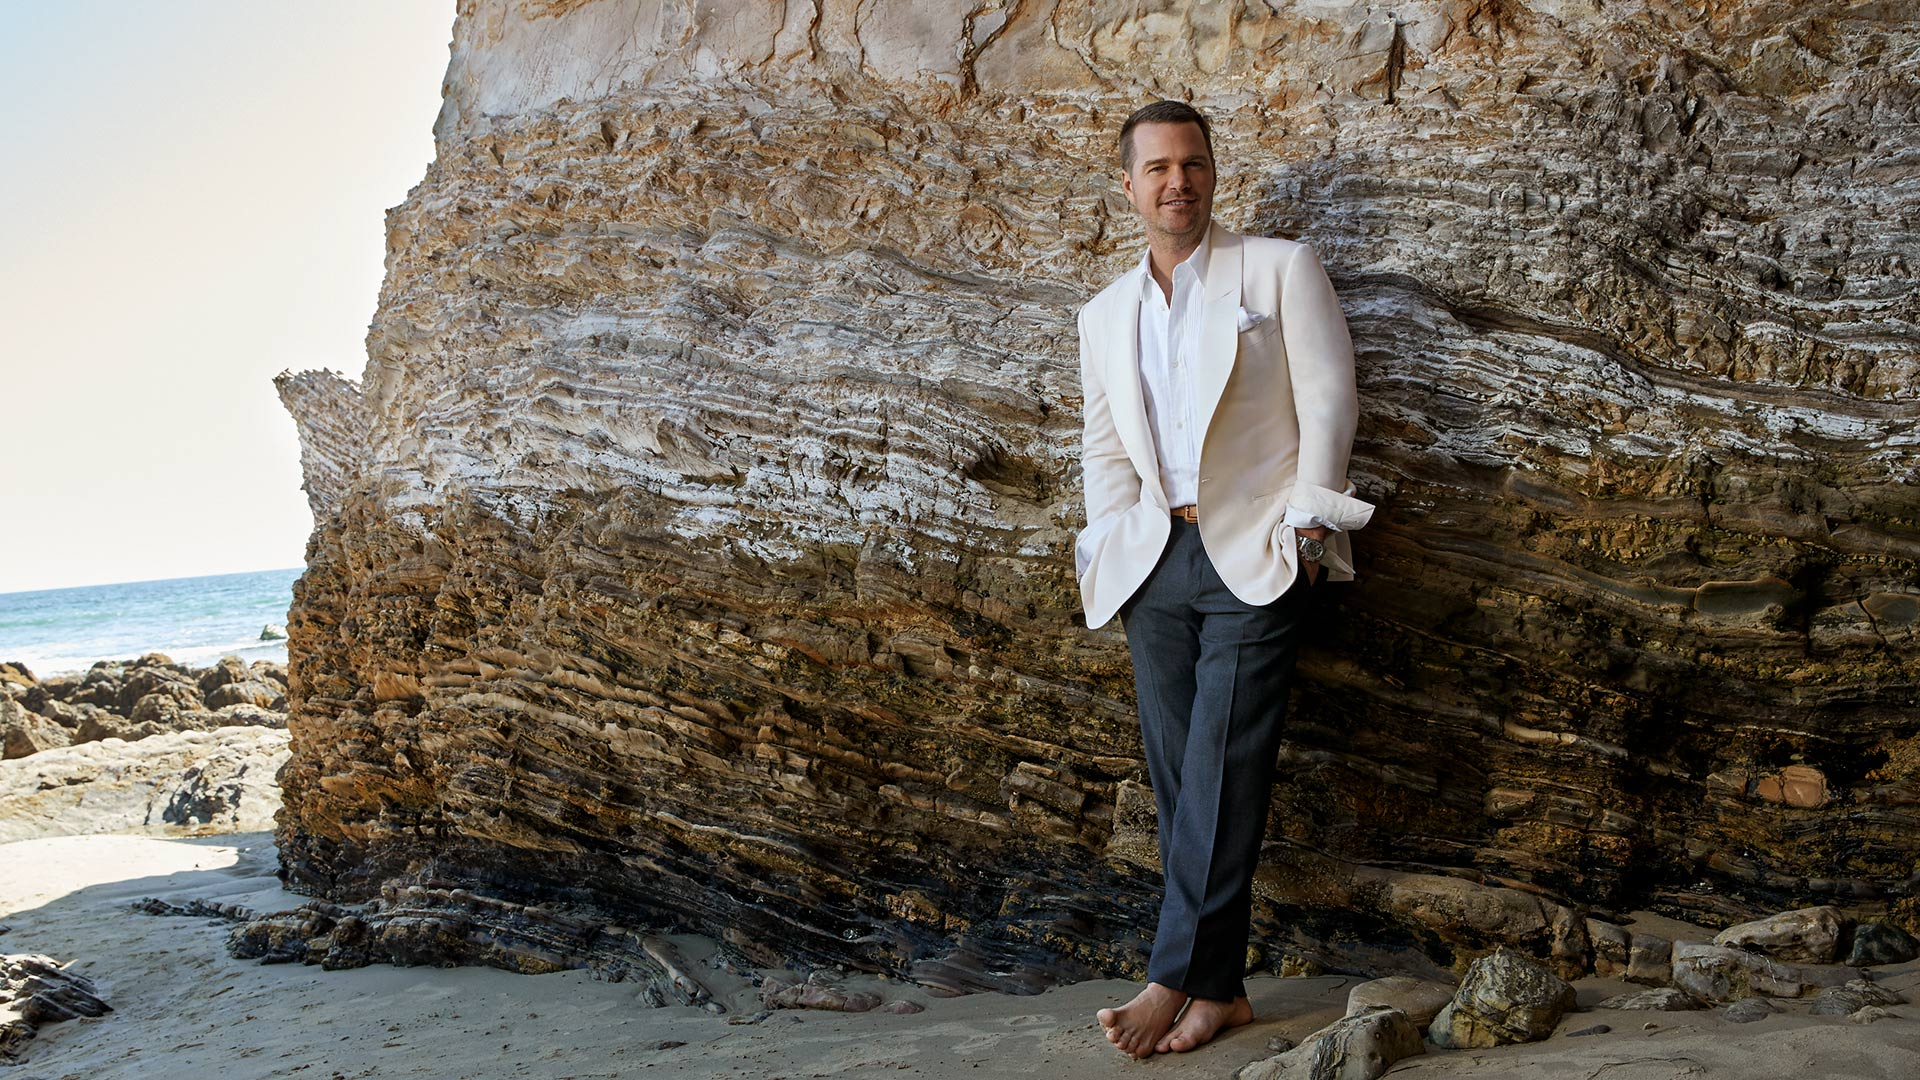 Chris O'Donnell puts his toes in the sand